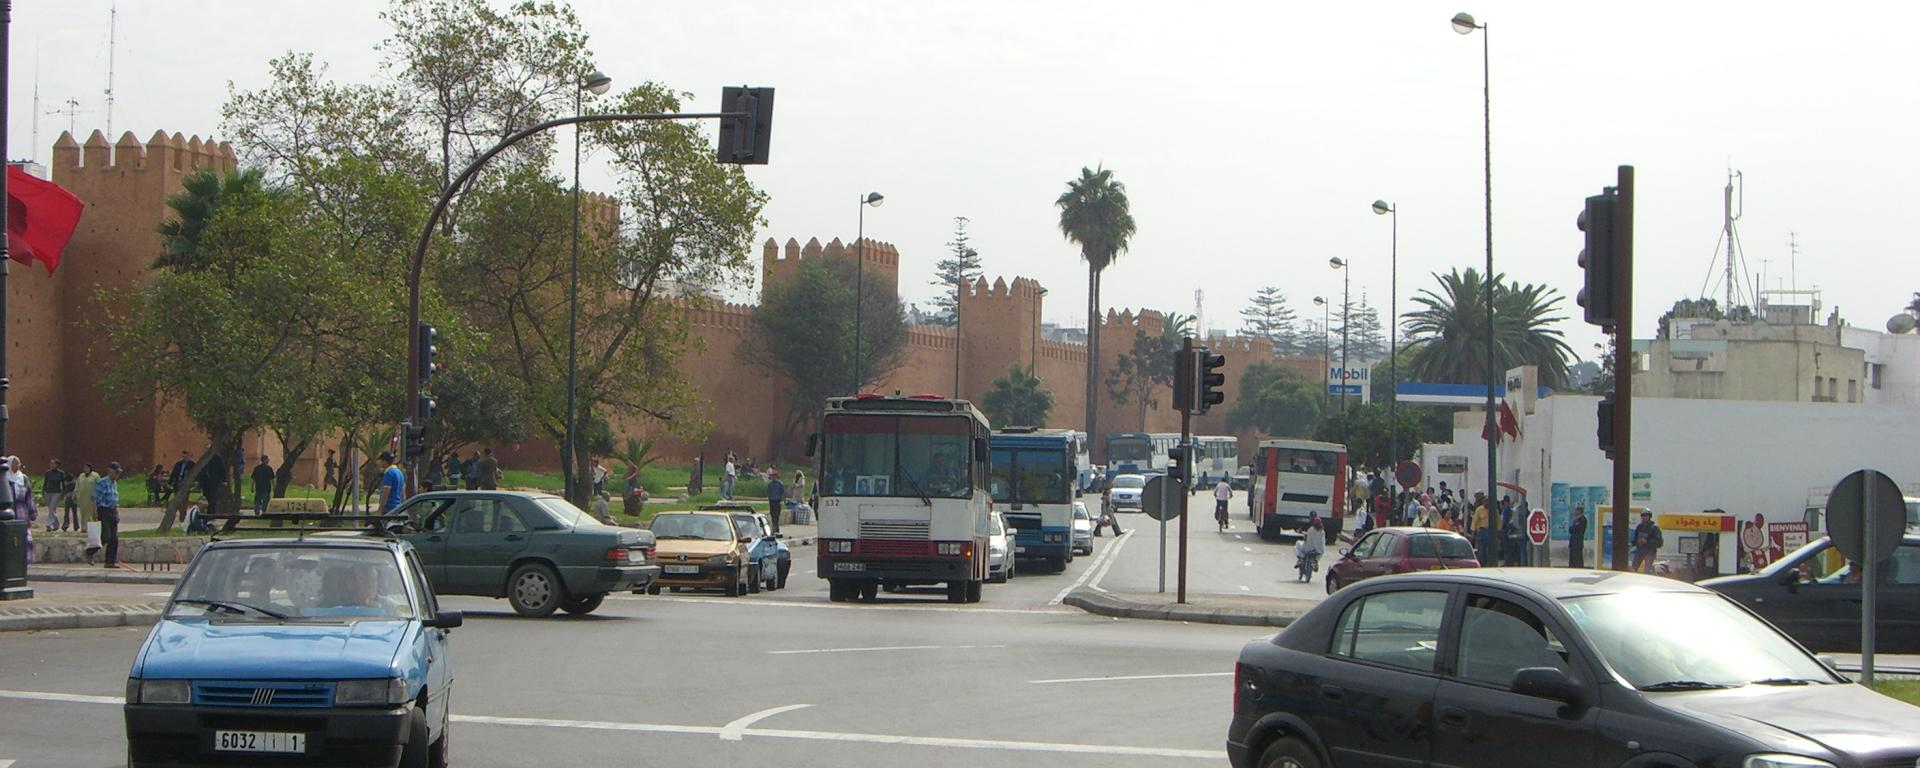 Rabat Urban Transport Master Plan